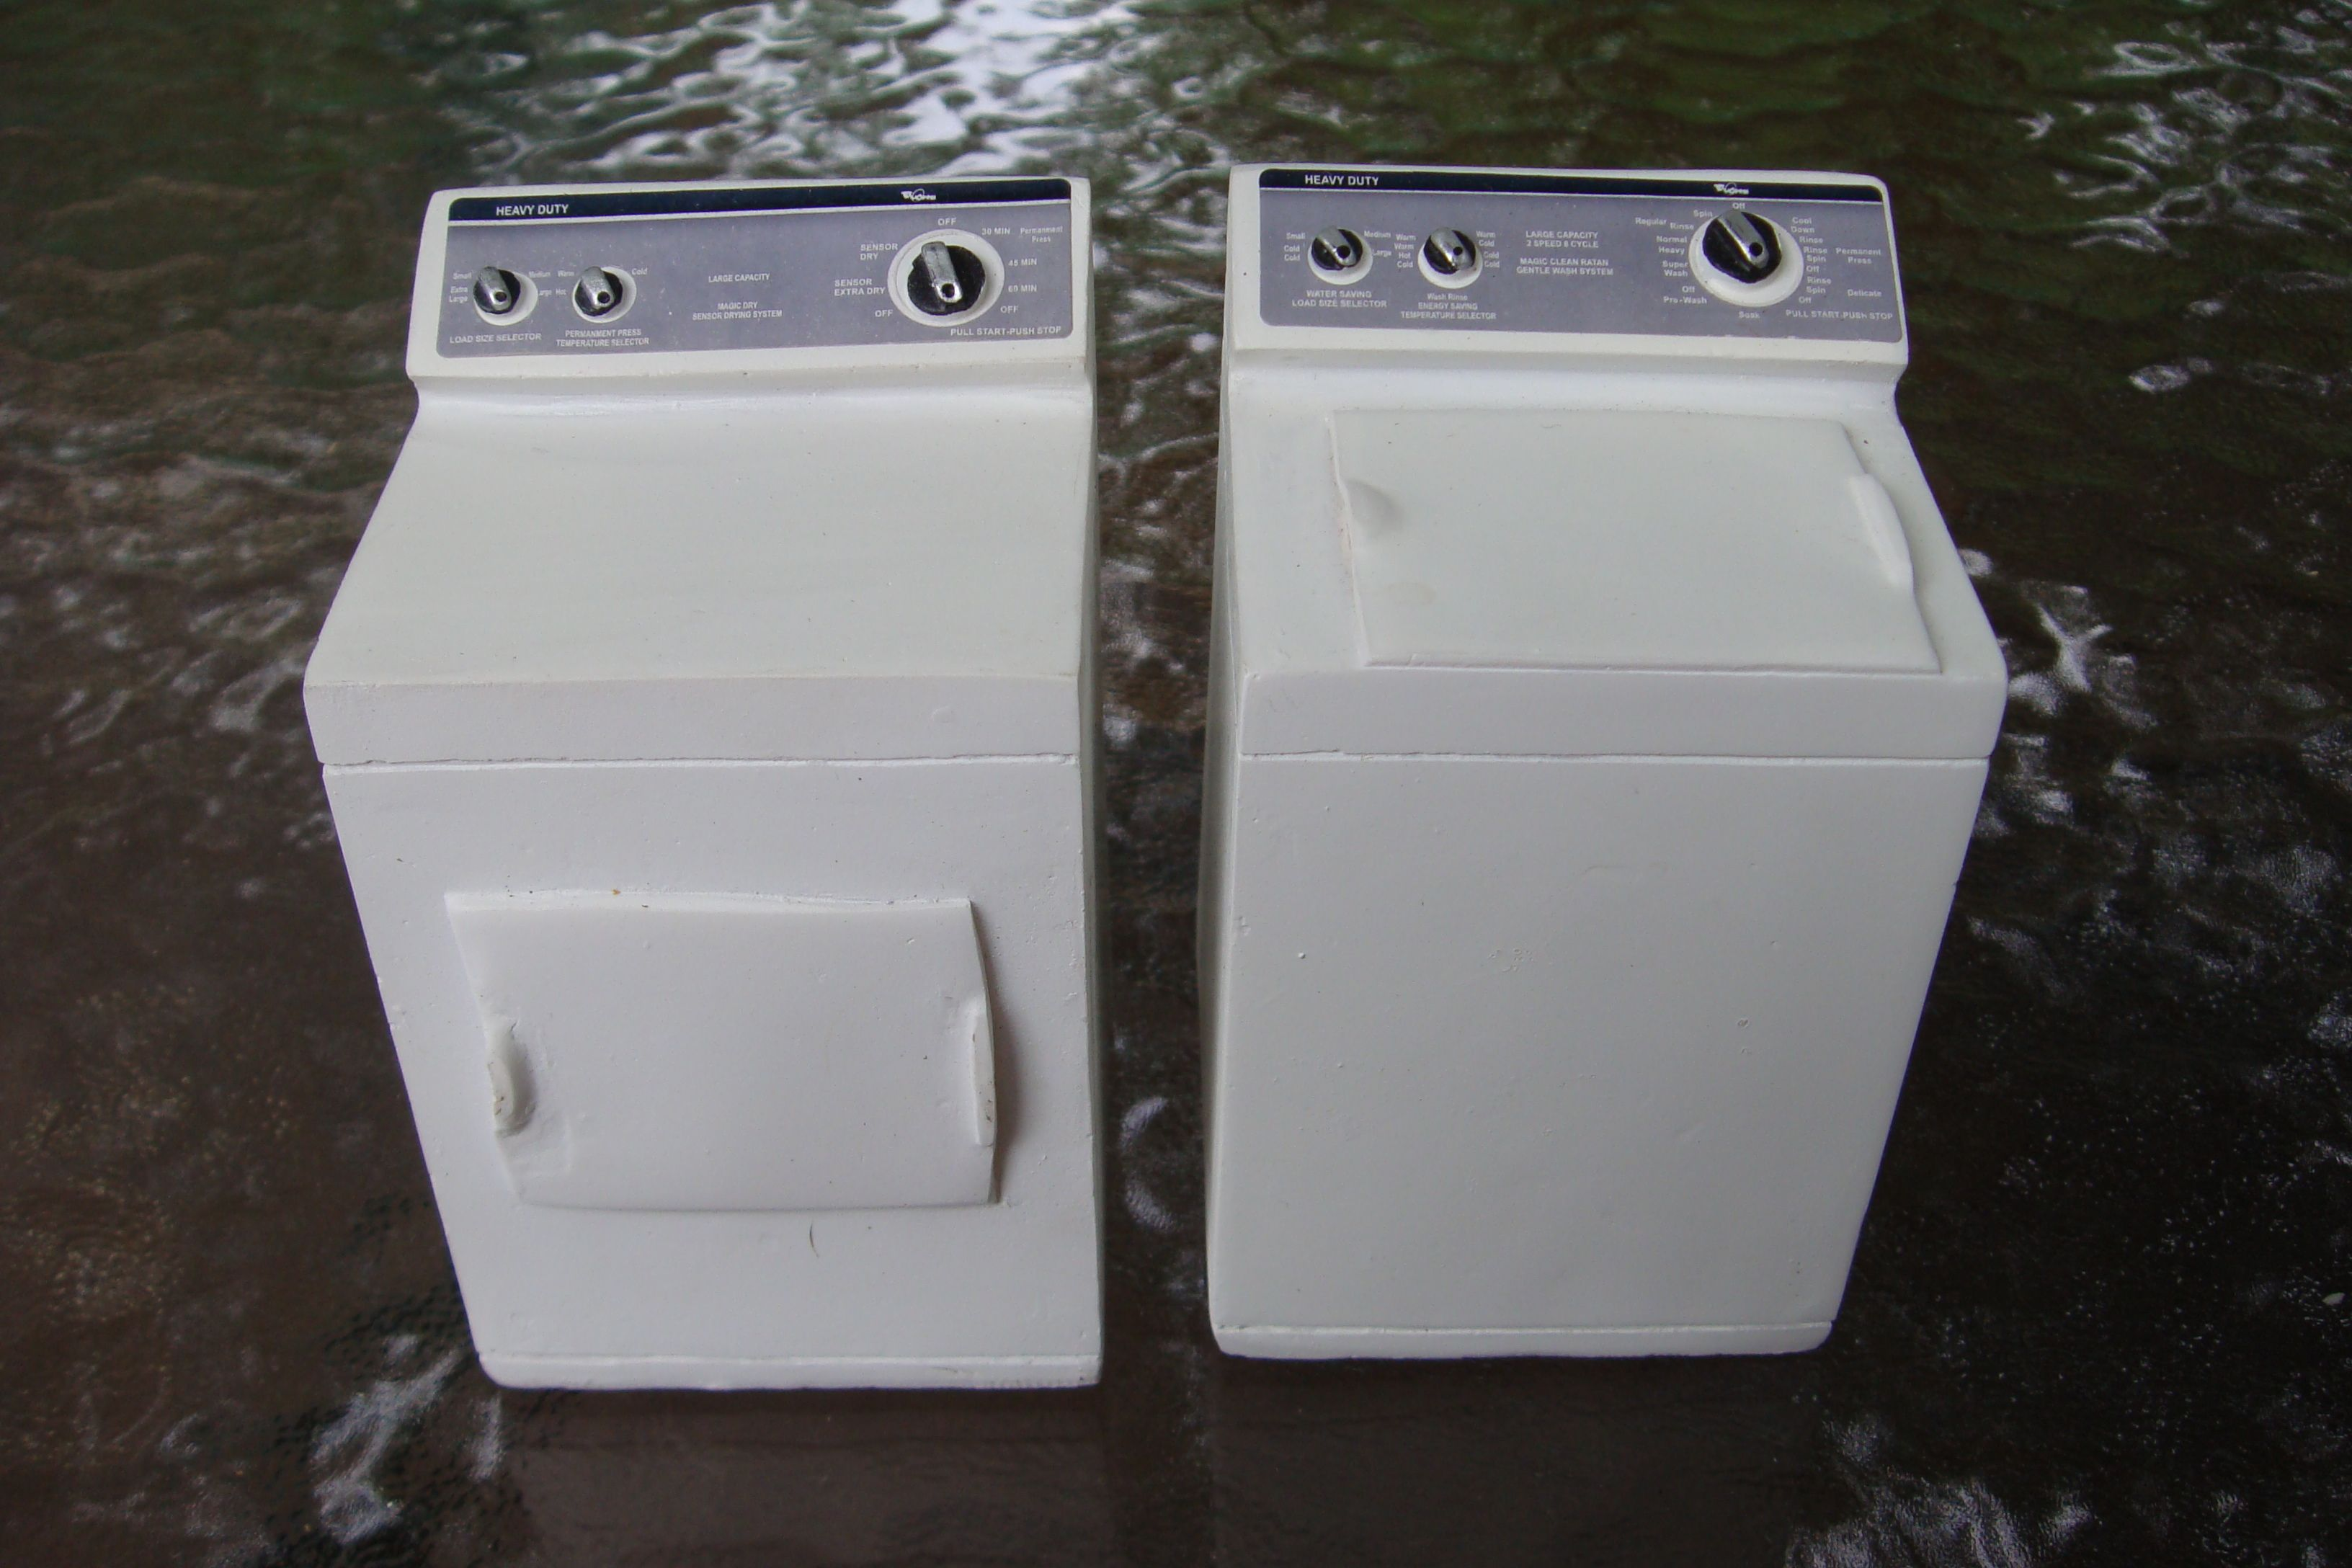 Modern Washer & Dryer in Resin